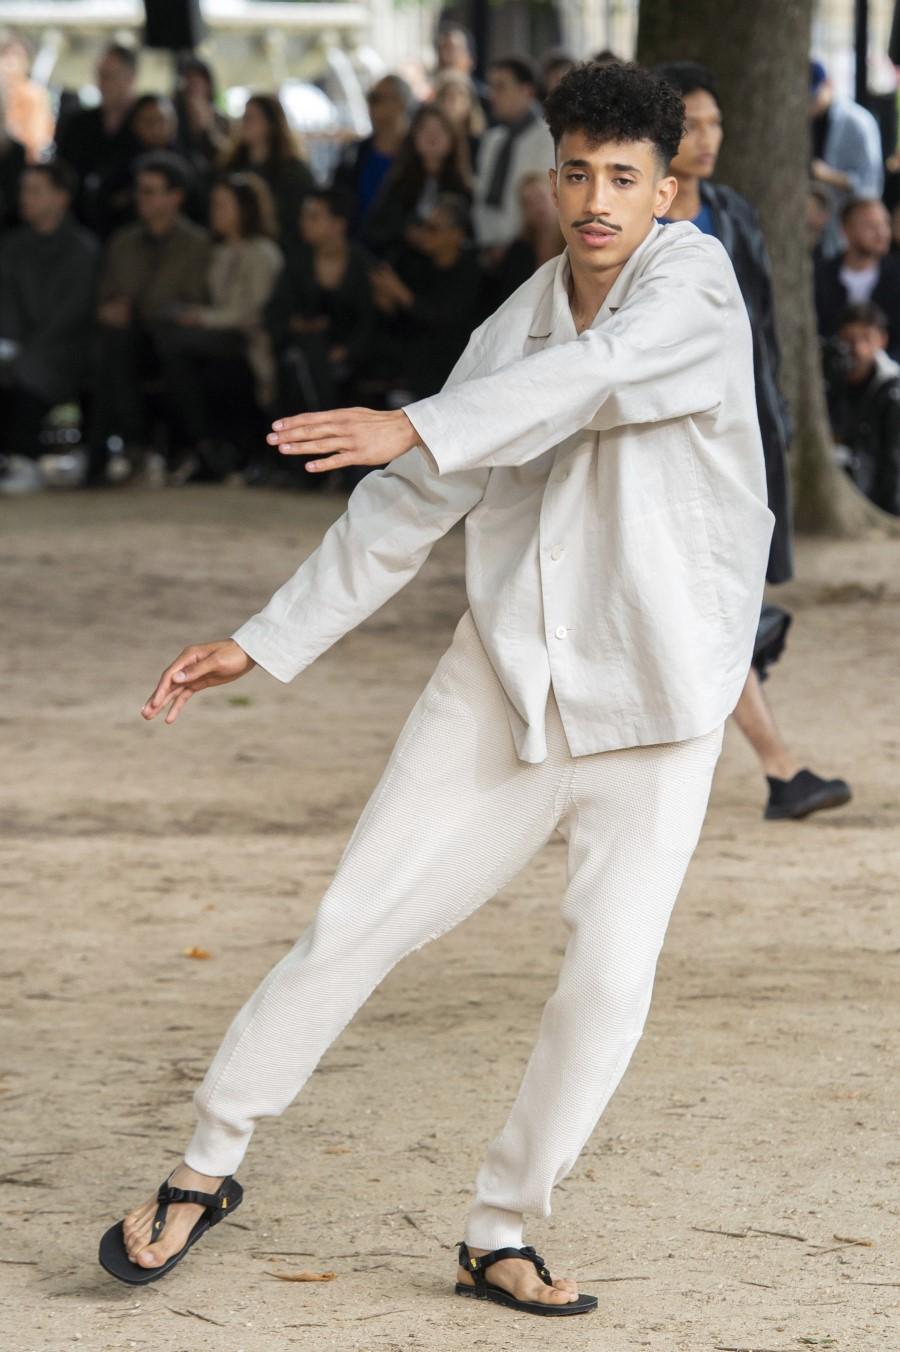 Issey Miyake Homme Plissé - Printemps-Été 2020 - Paris Fashion Week